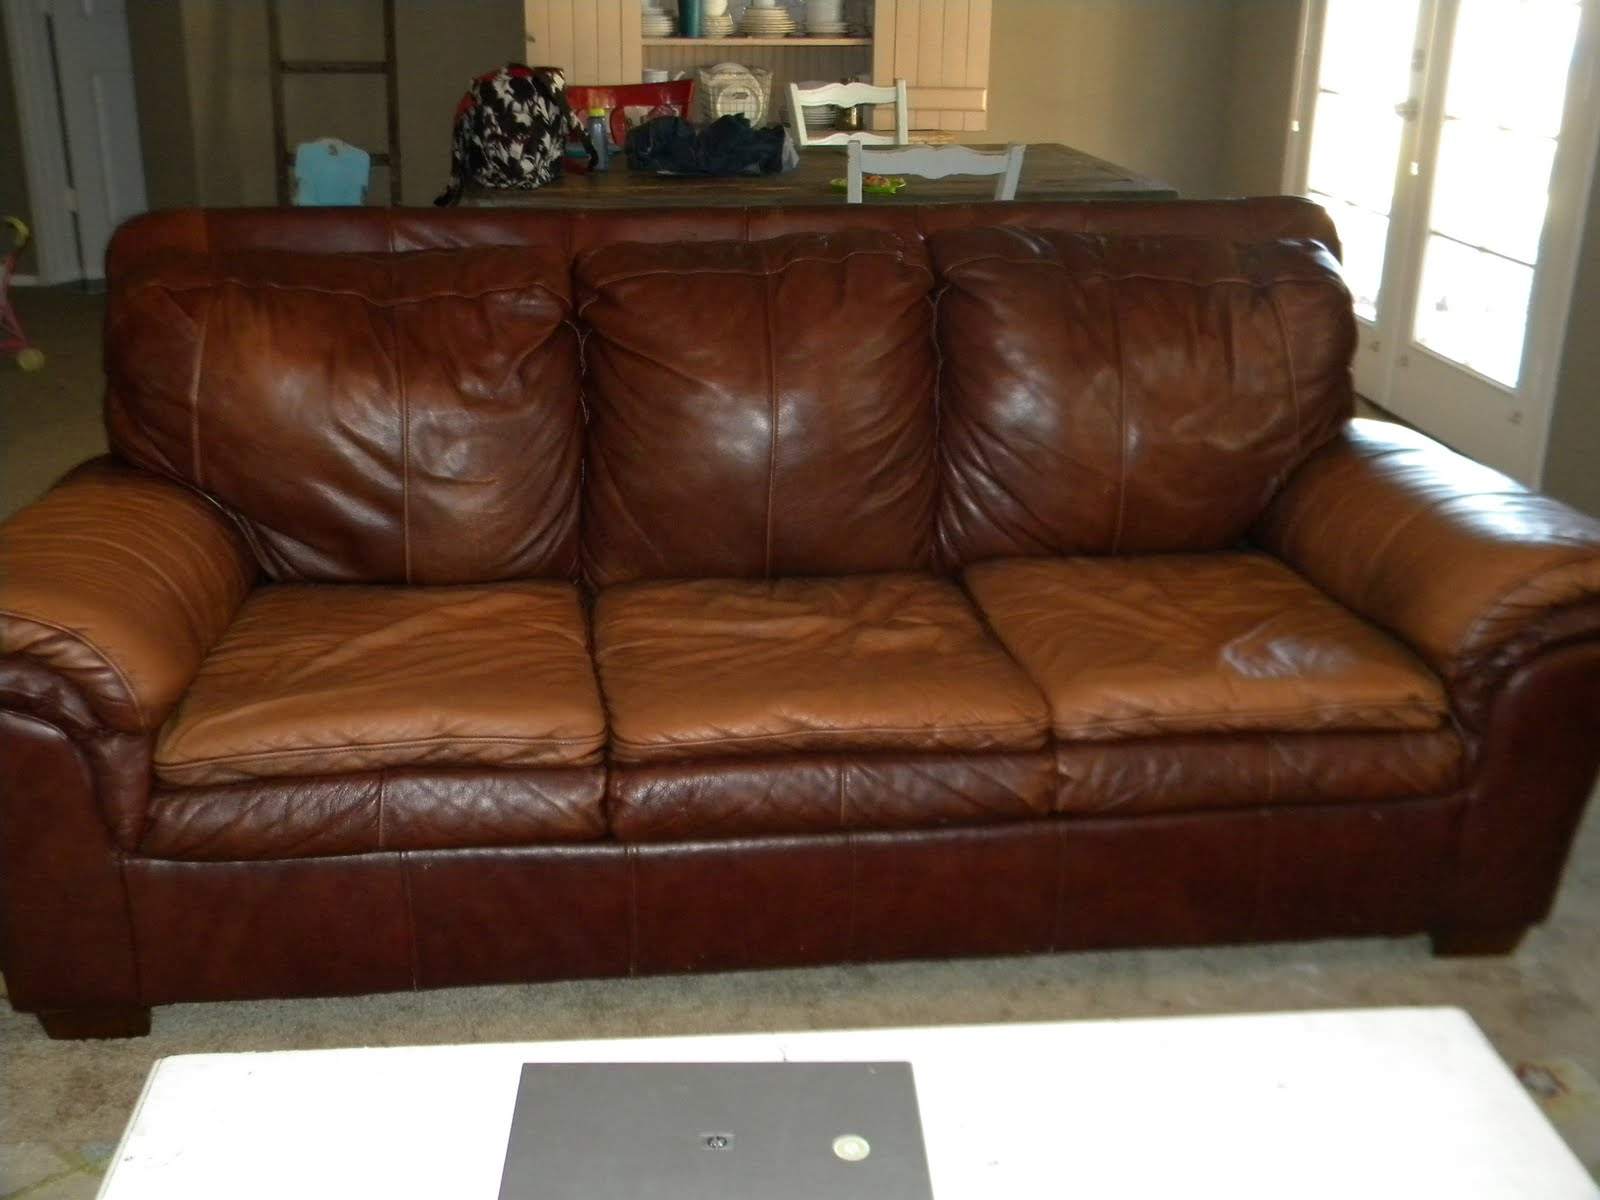 Grand Design Leather couch and chair